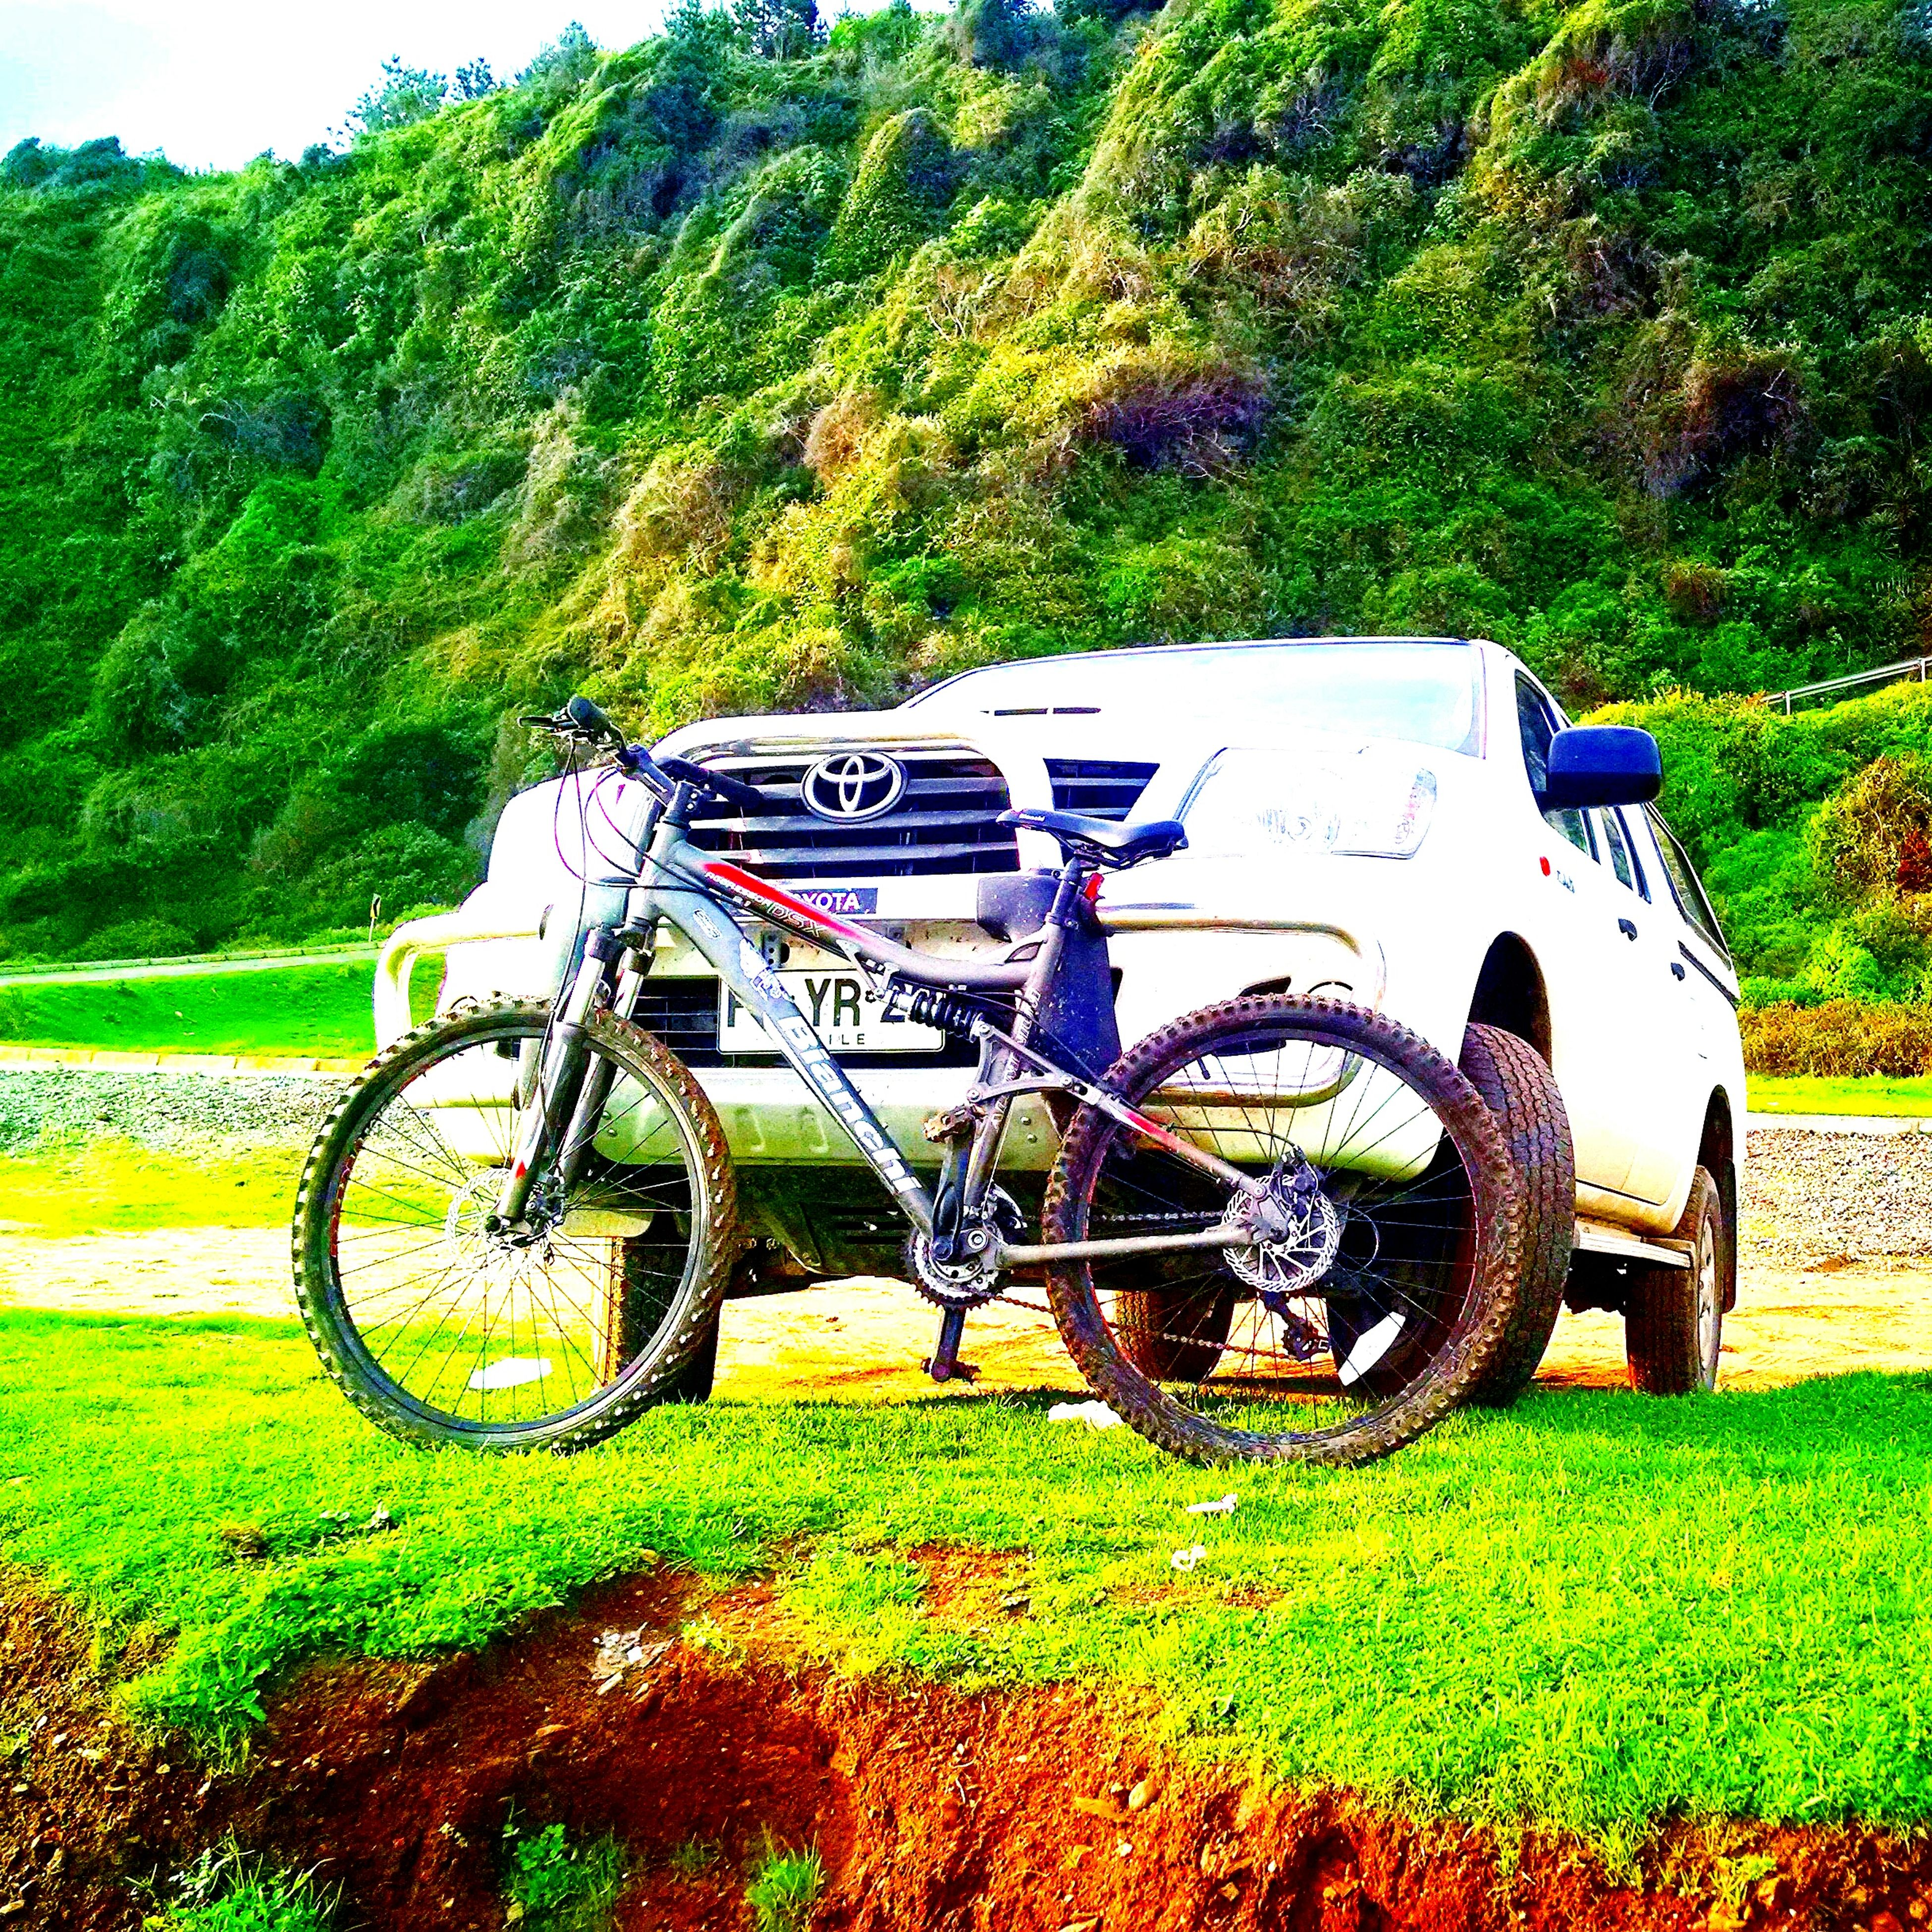 transportation, mode of transport, bicycle, land vehicle, grass, field, stationary, tree, landscape, green color, grassy, parked, parking, wheel, growth, plant, travel, motorcycle, day, nature